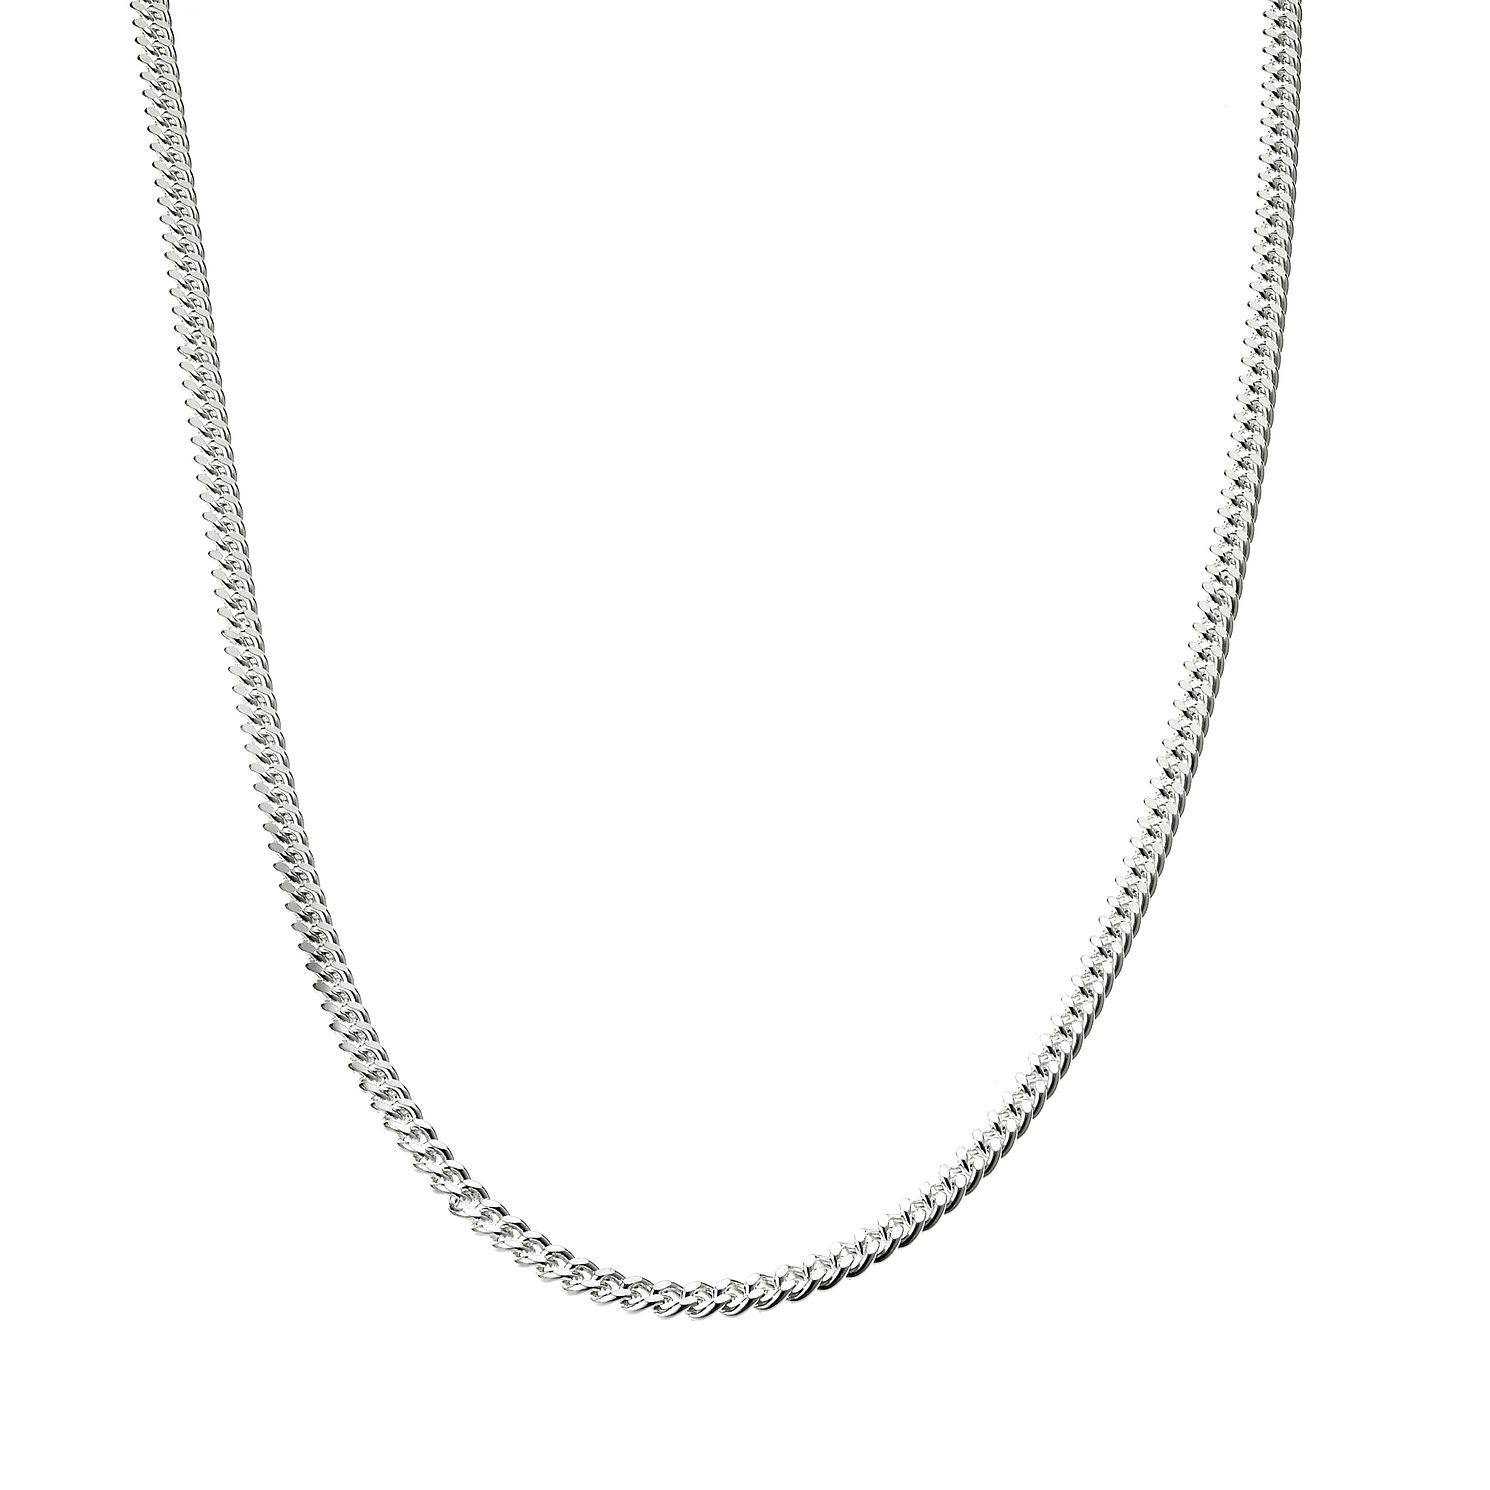 cable silver ch categories jewelry avery necklace chain chains pendant james necklaces light zoom